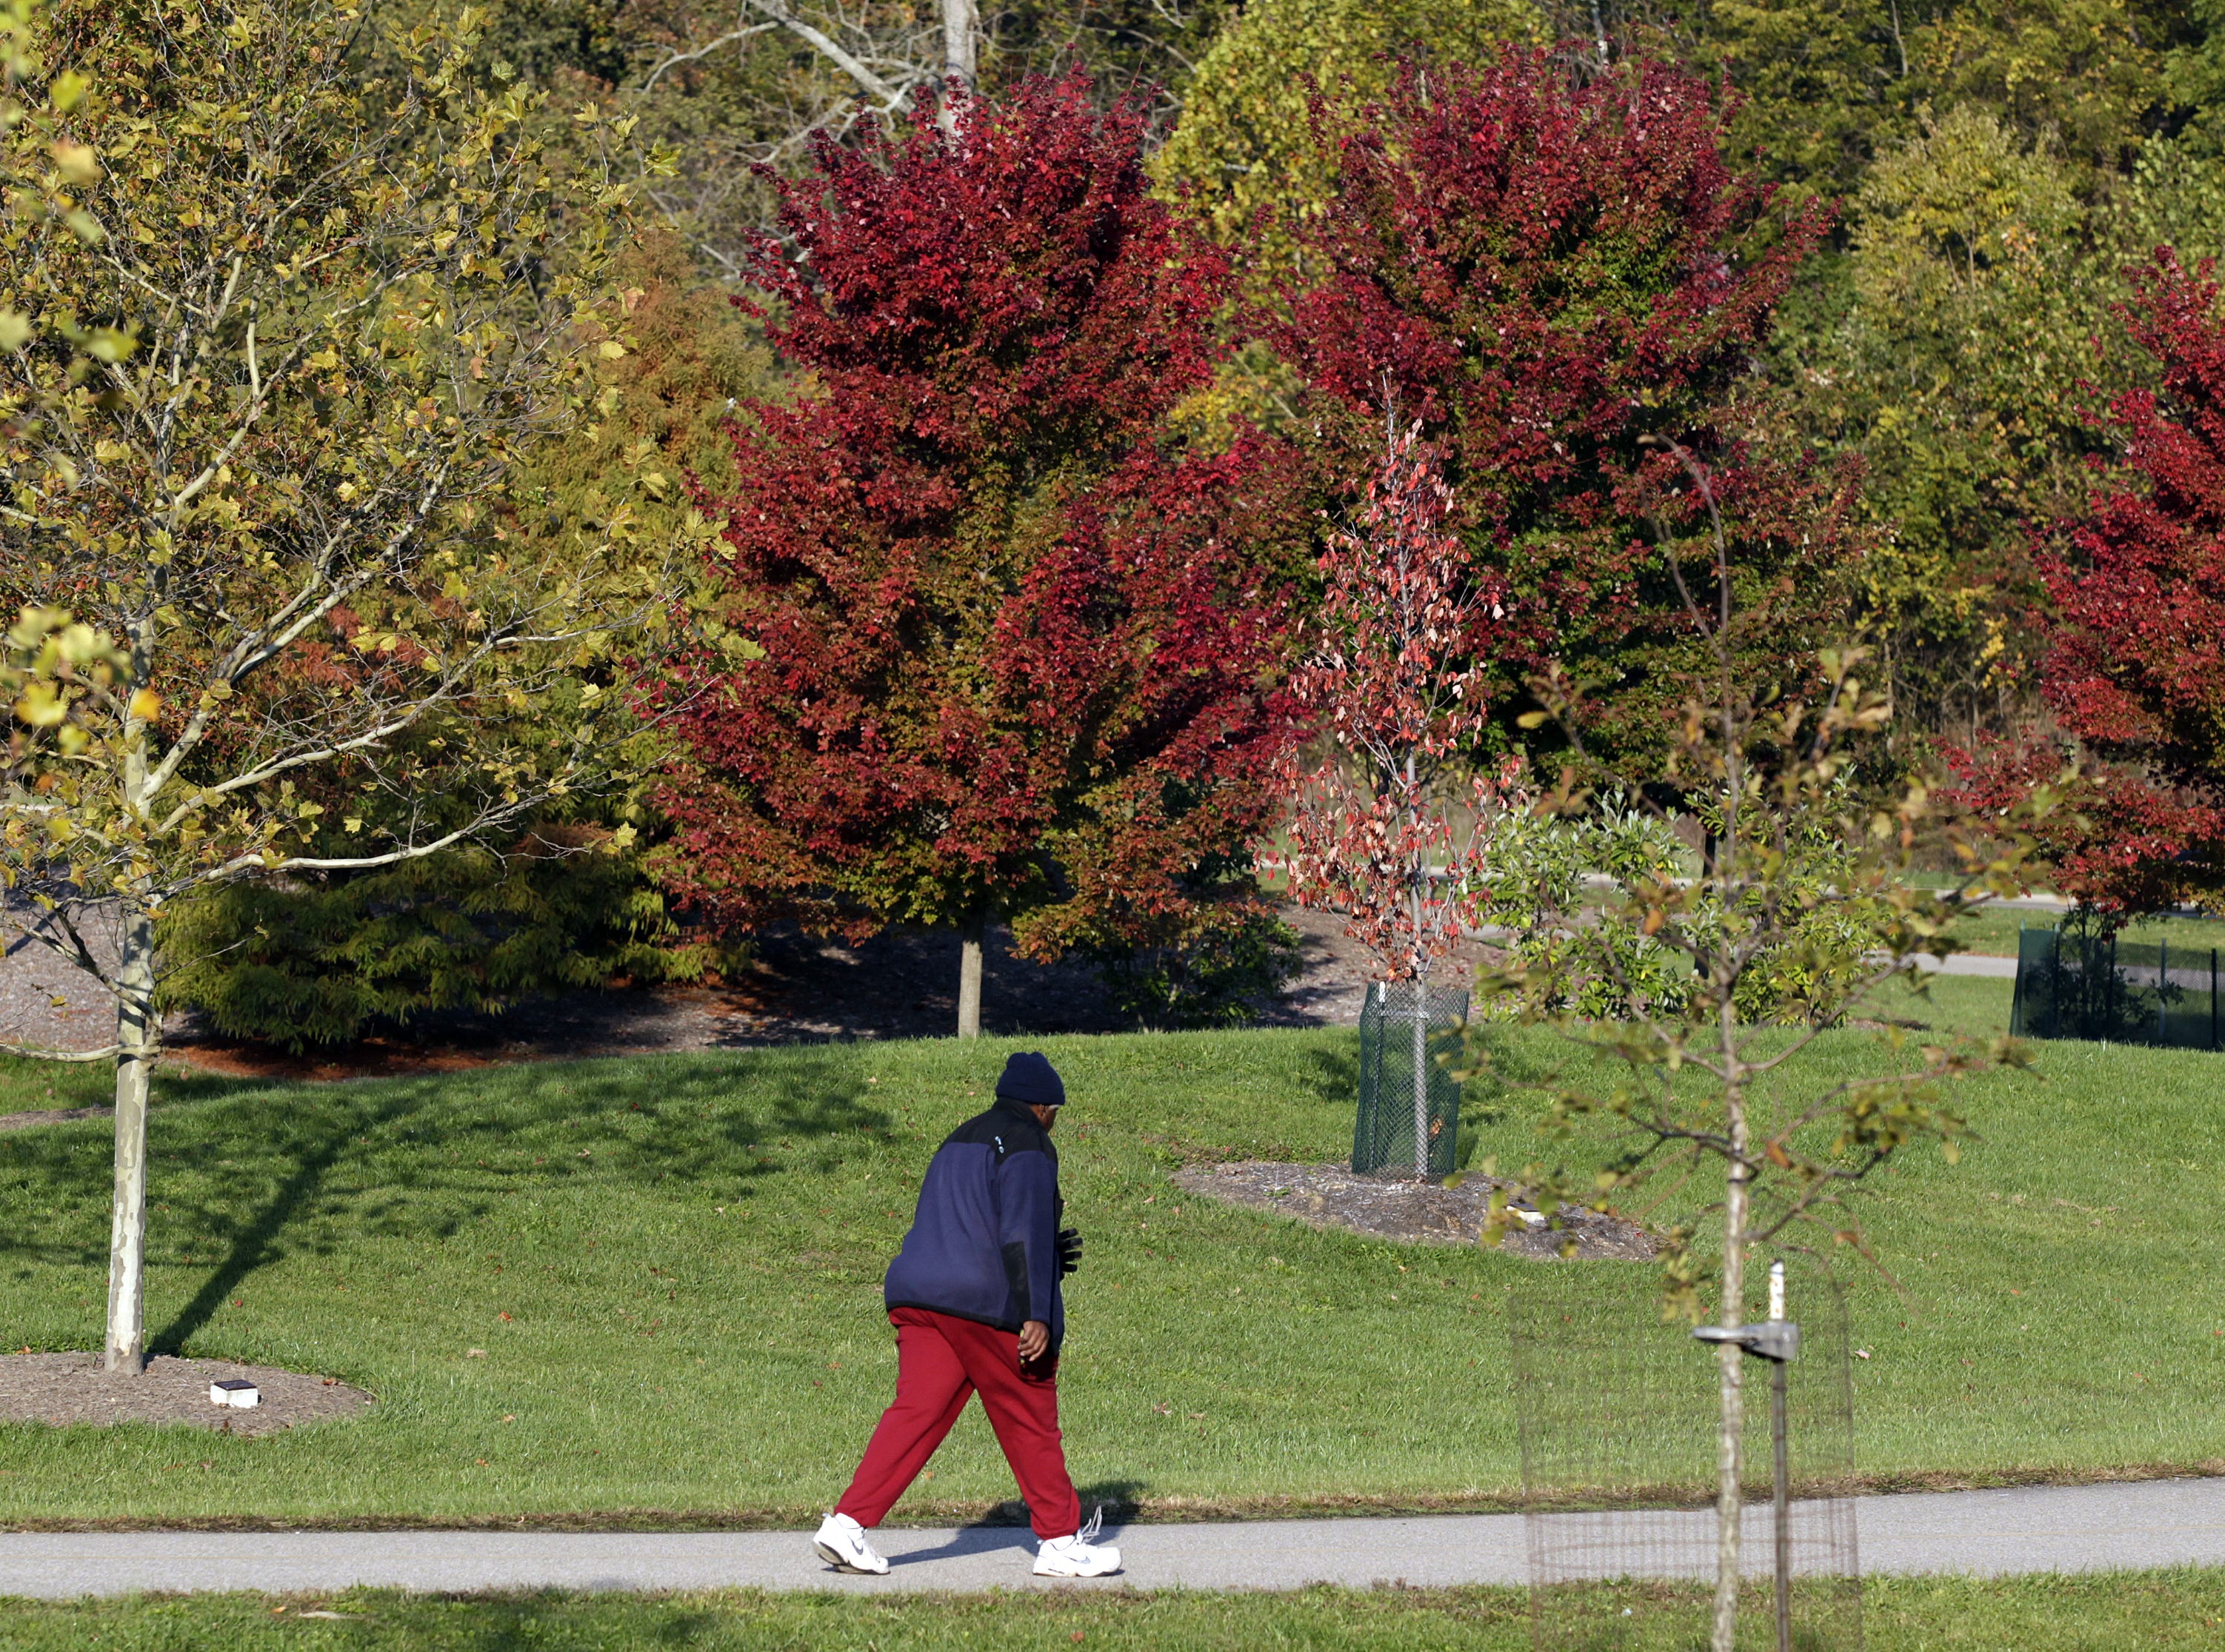 Trees at Winton Woods Park in Springfield Township when colors have changed, Oct. 12, 2012.